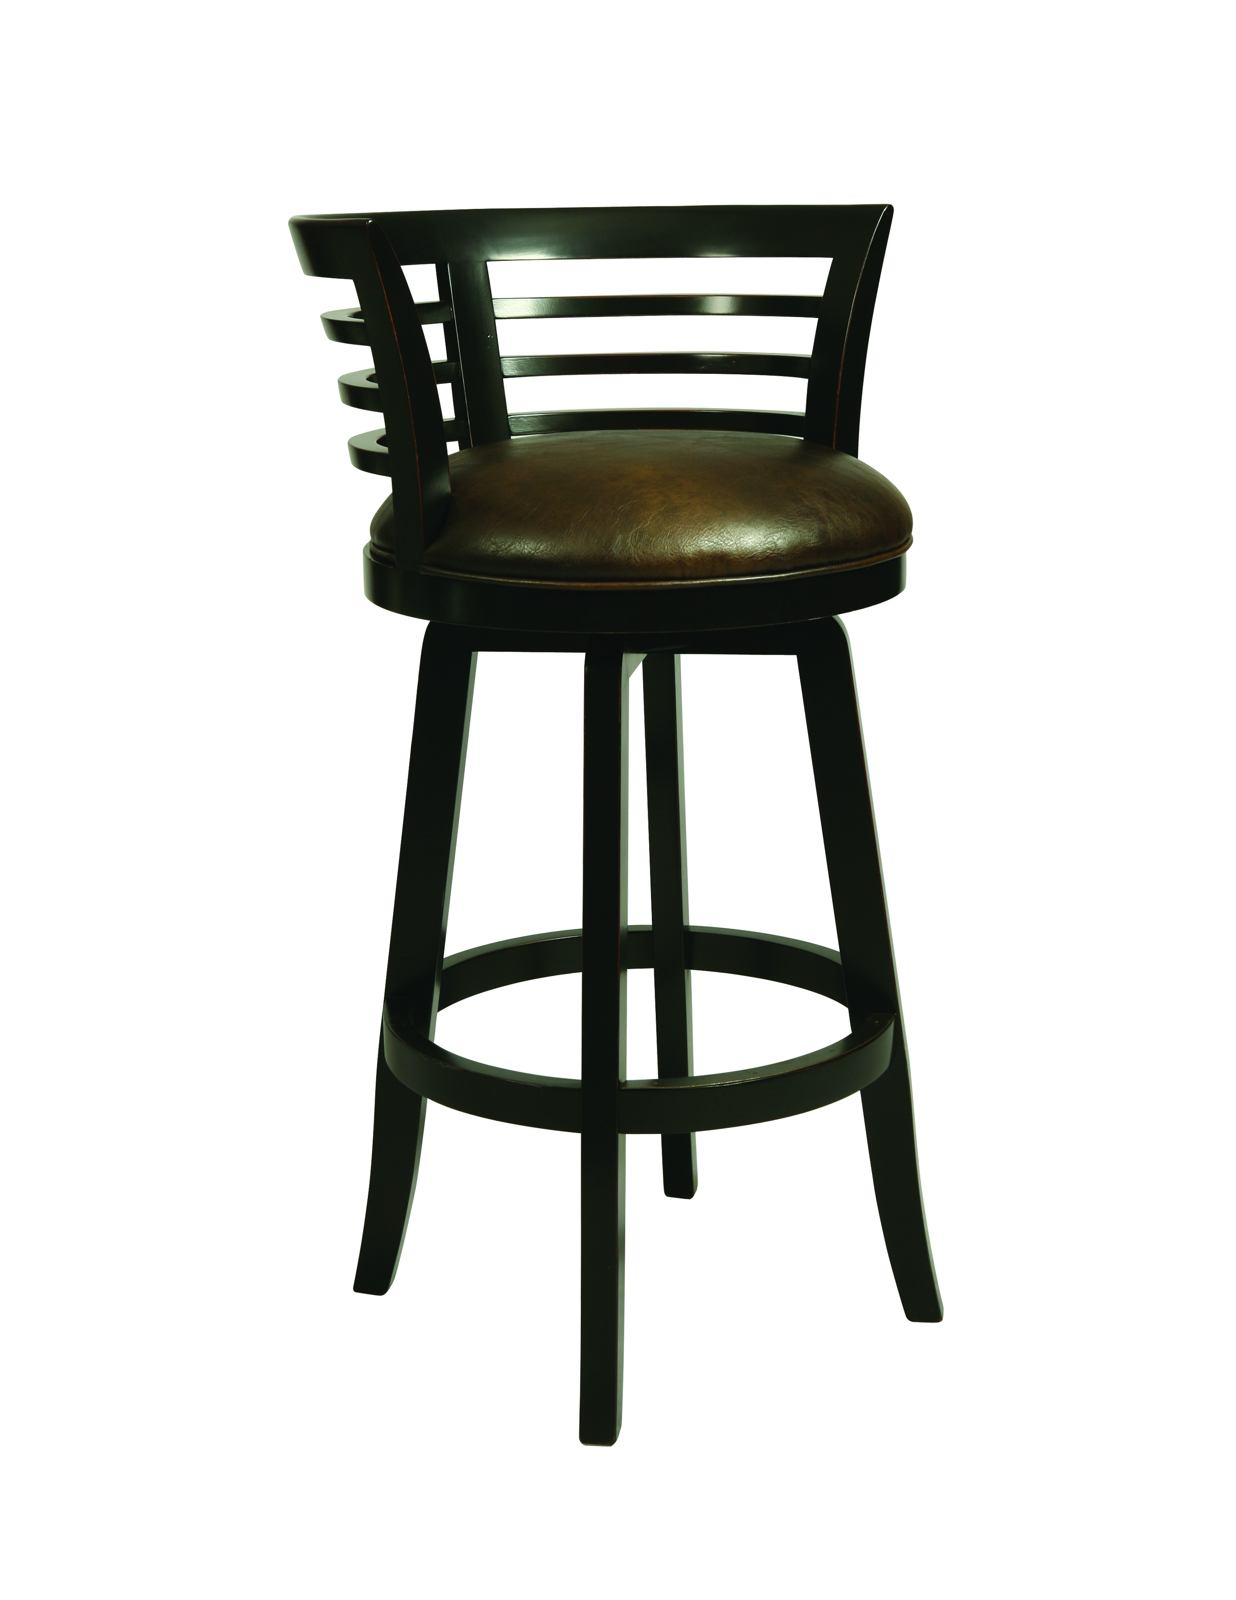 Pastel Furniture Ortona Swivel Wood Barstool in Weather Black (Set of 2) OR-225-26-WB-971